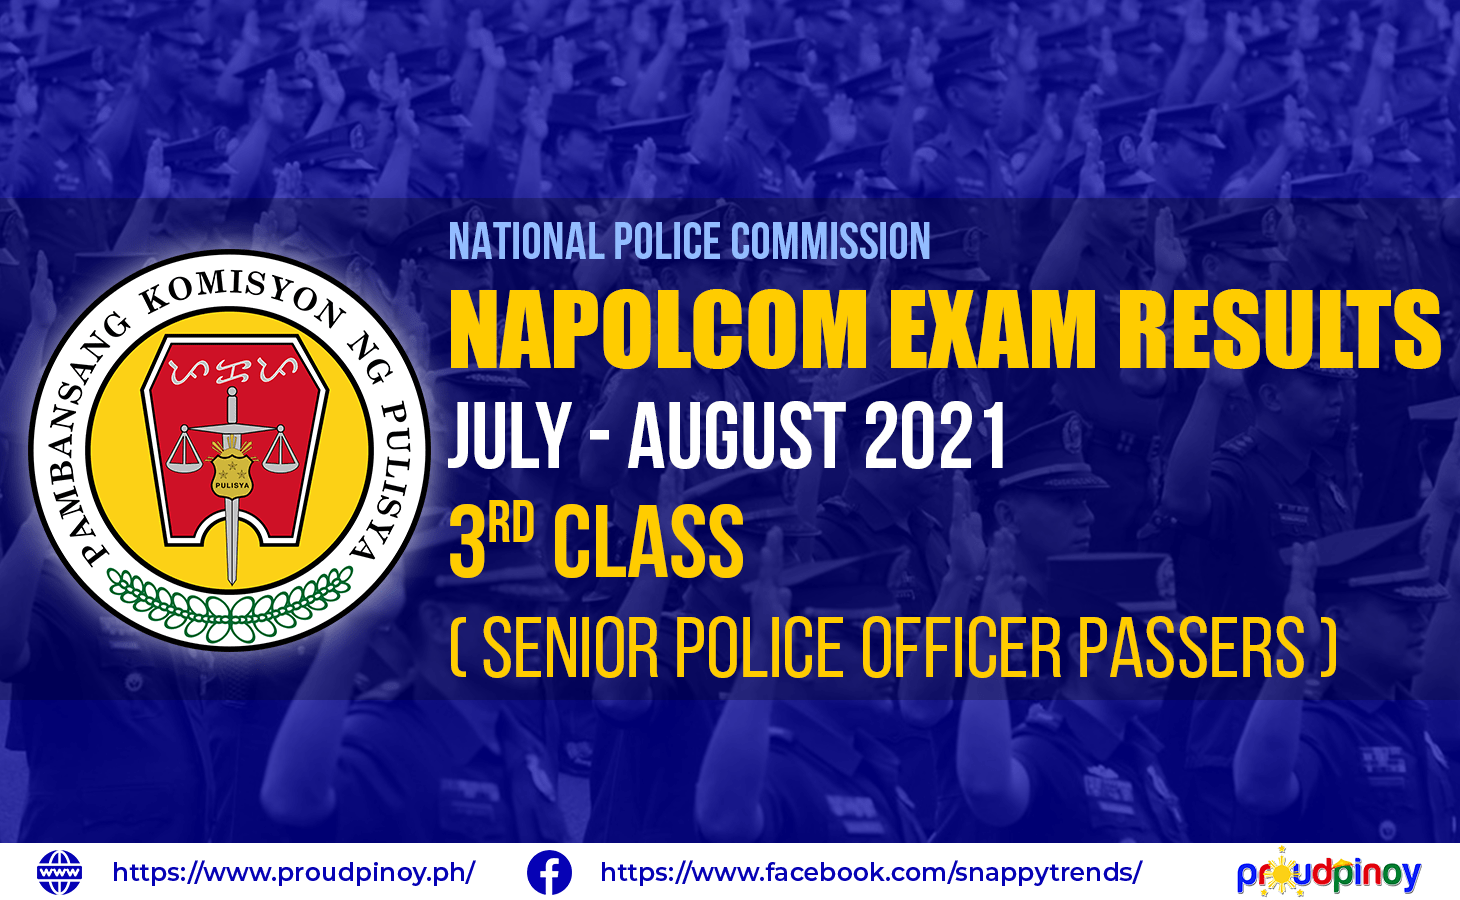 NAPOLCOM Exam Results July-August 2021, Senior Police Officer